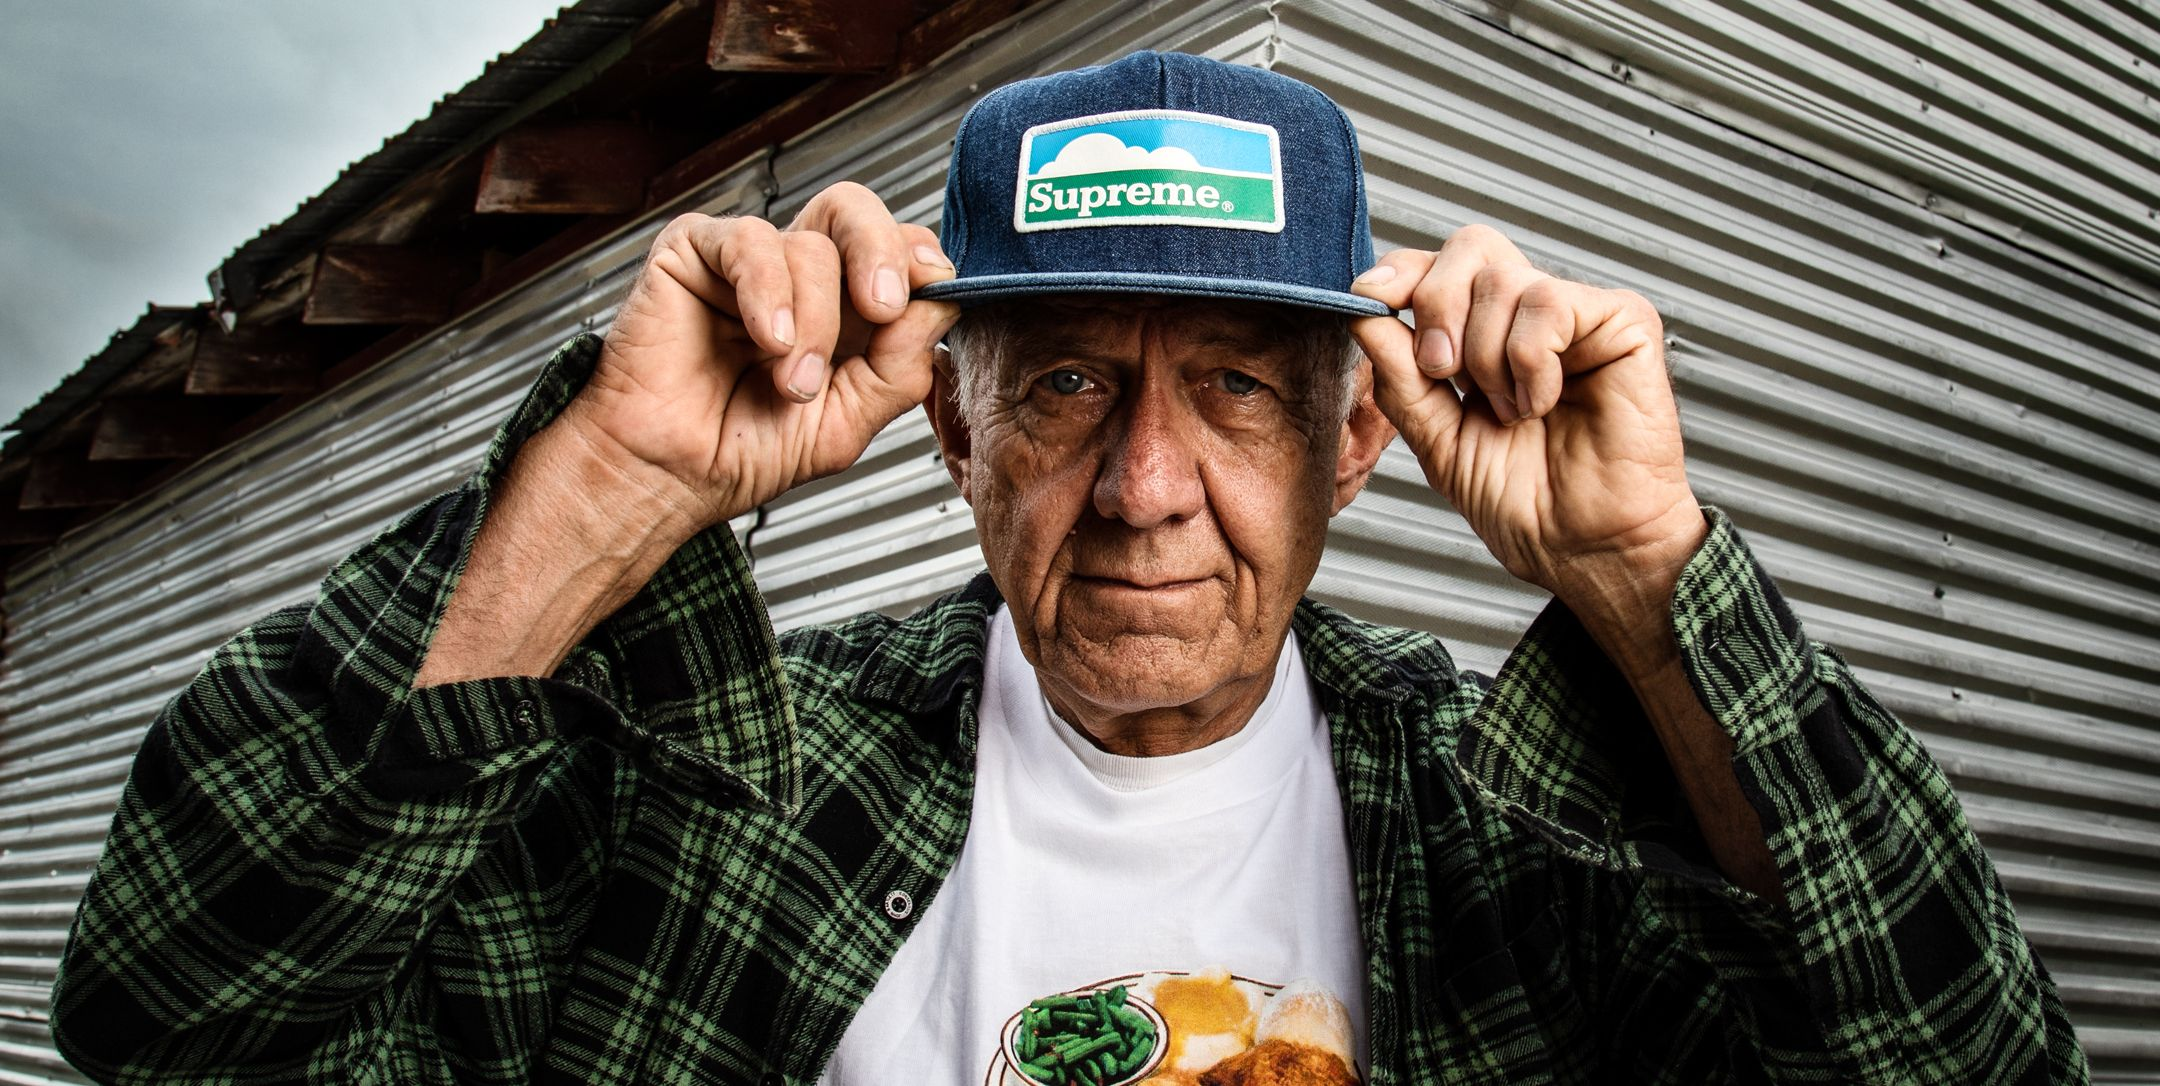 A Bacon Company Is Trolling Supreme for Biting Its Logo To Feed the Fuccbois